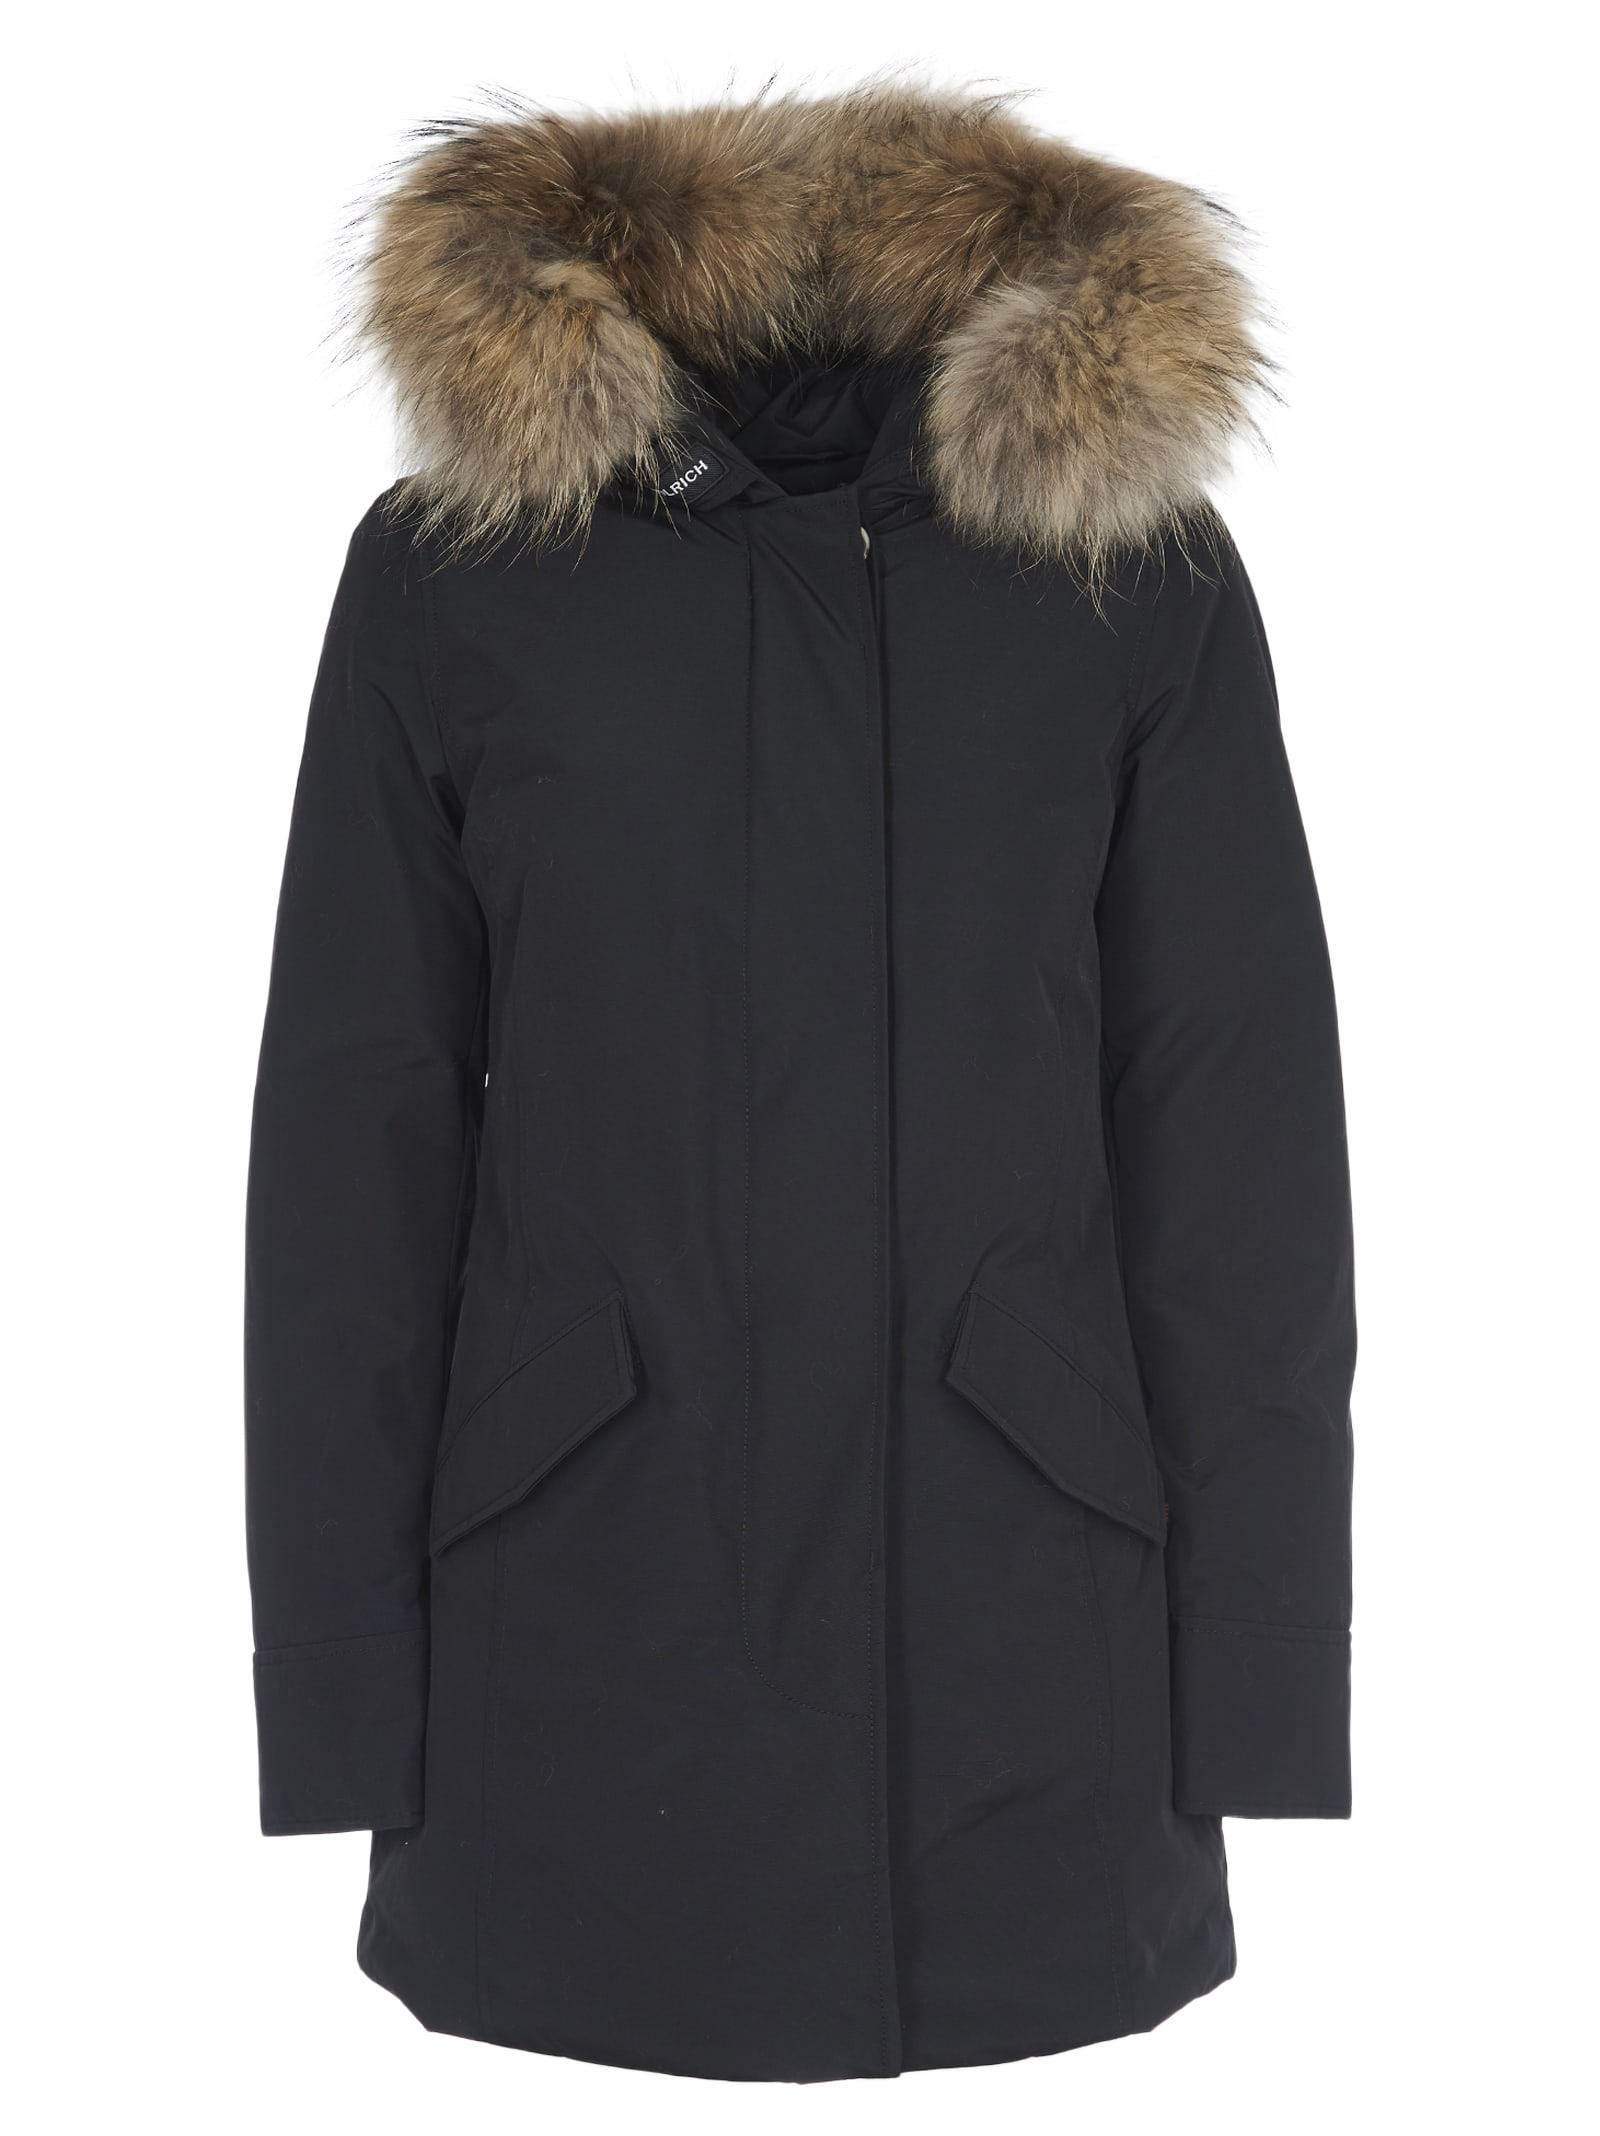 Photo of  Woolrich Woolrich Black Artic Parka- shop Woolrich jackets online sales